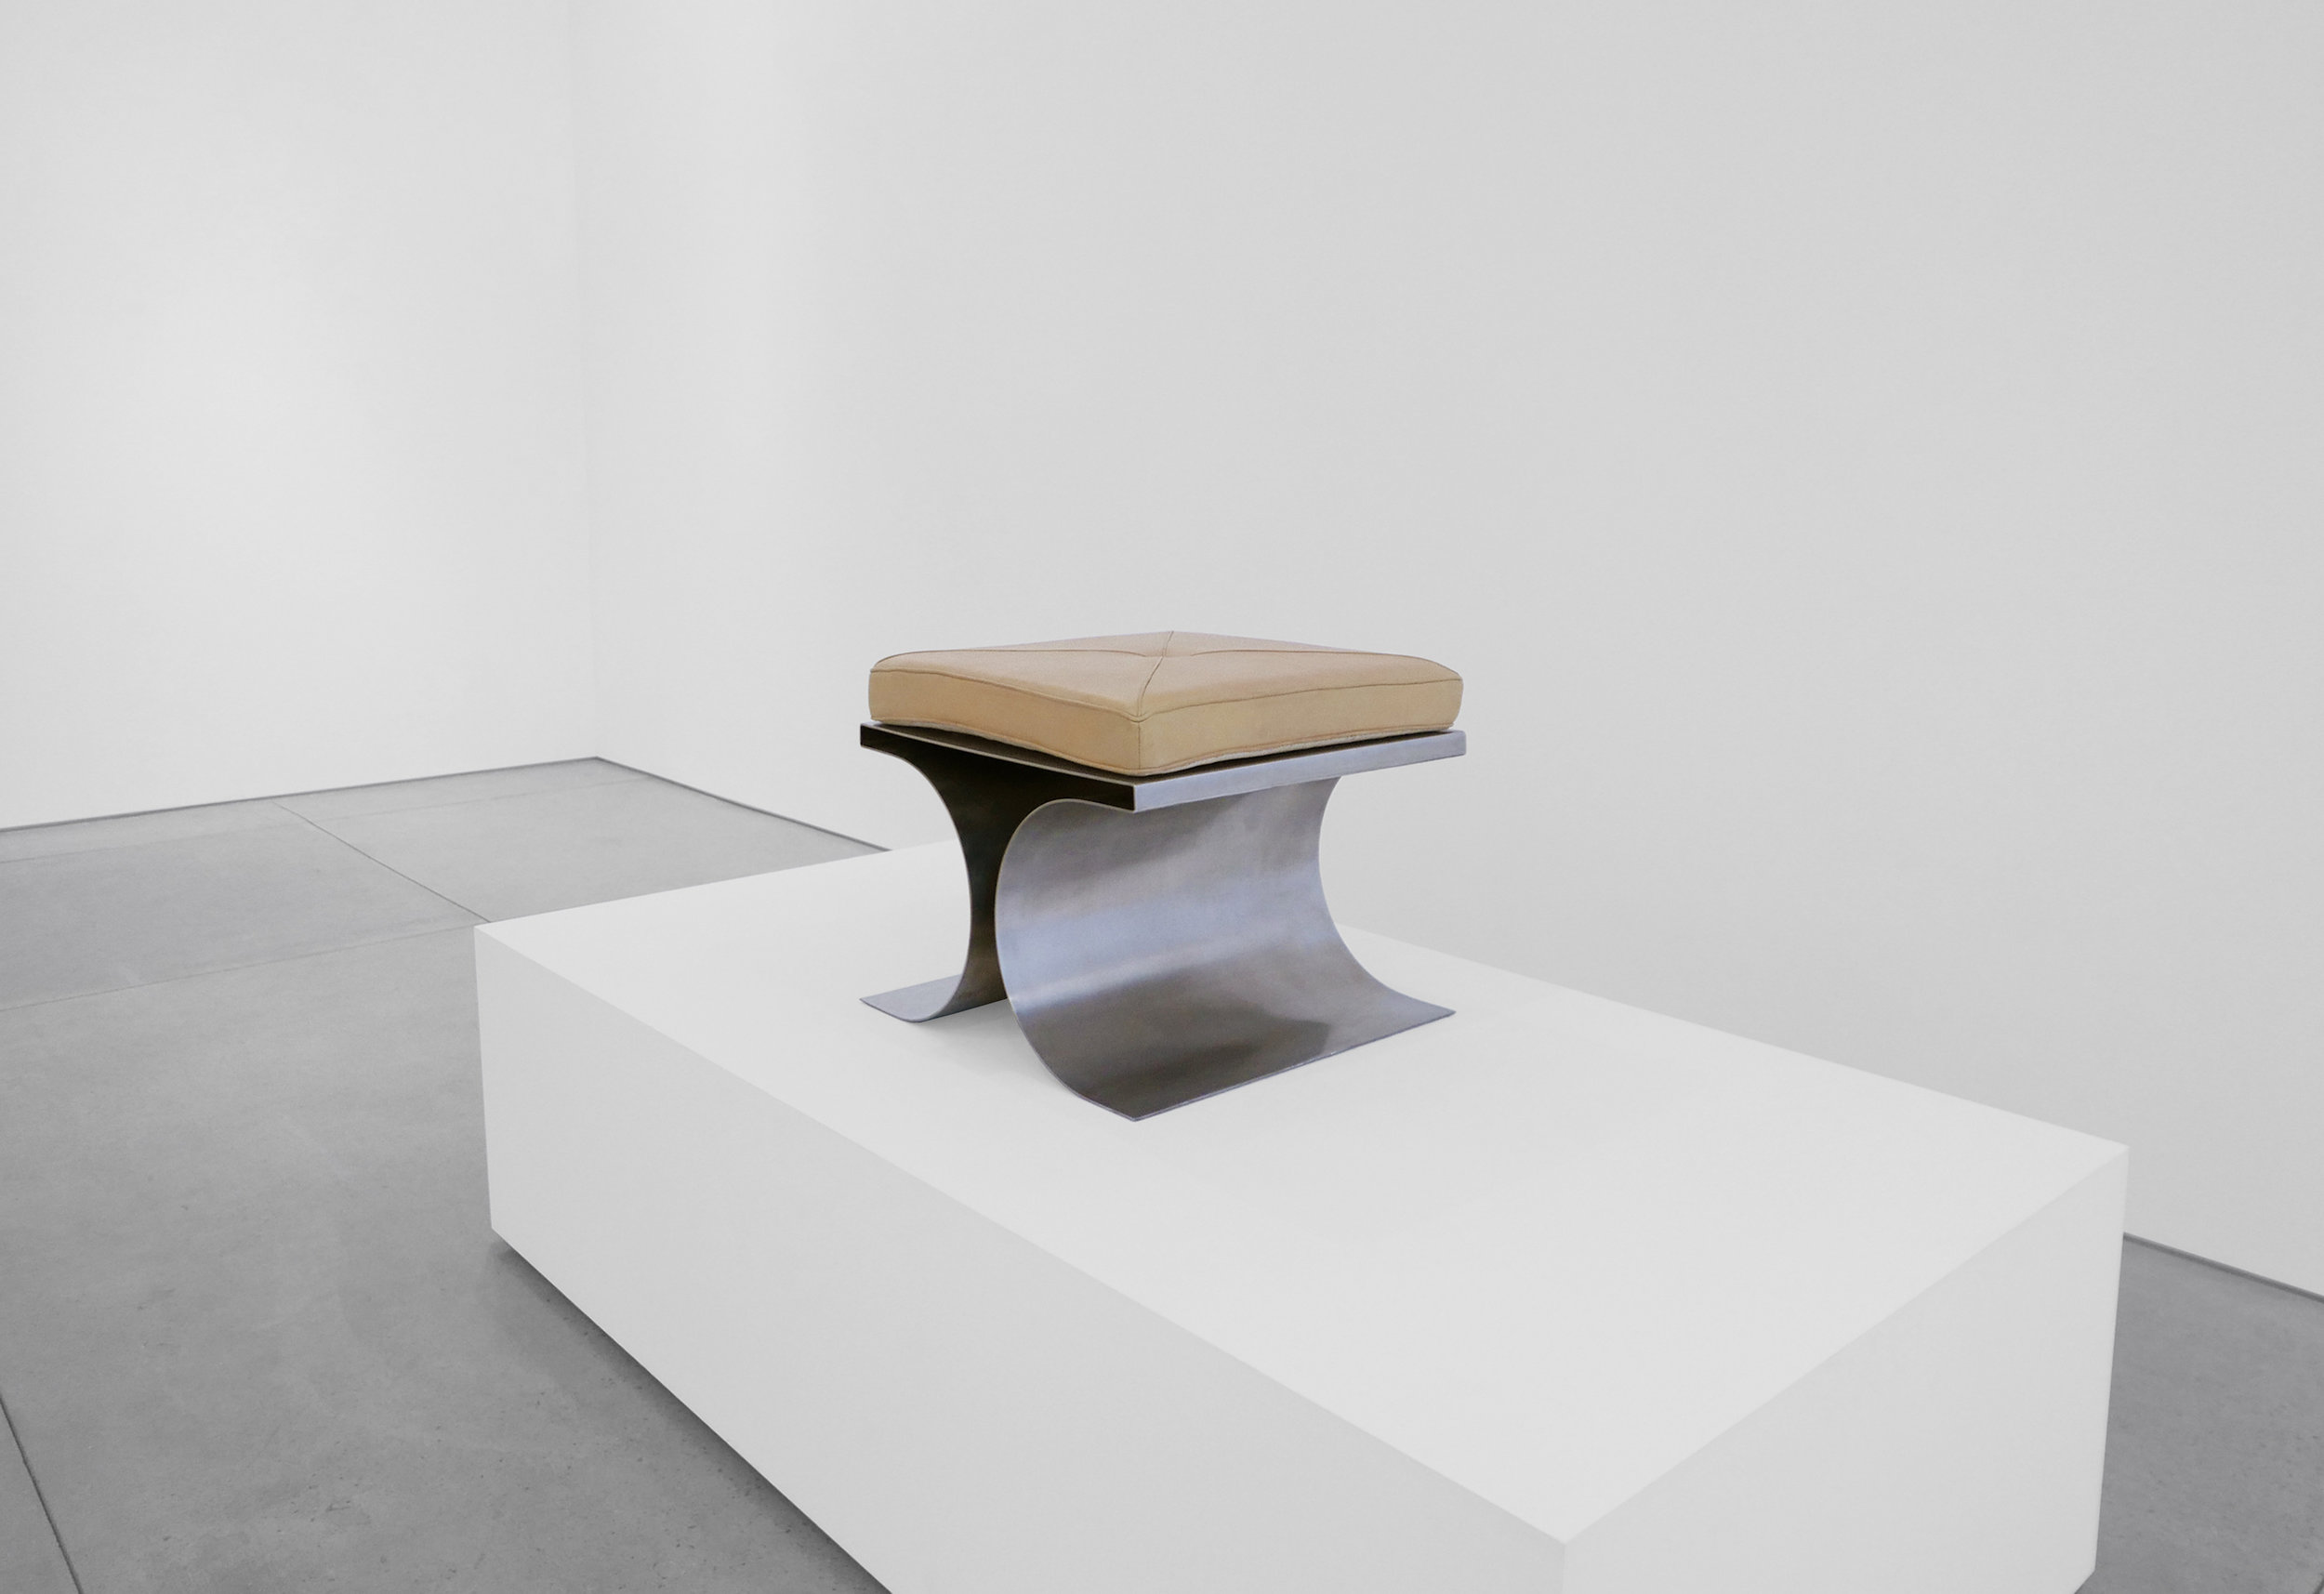 2. Micel Boyer, 'X' Stool, c. 1968, stainless steel and leather upholstery, 16H x 19.75W x 19.75D inches.jpg